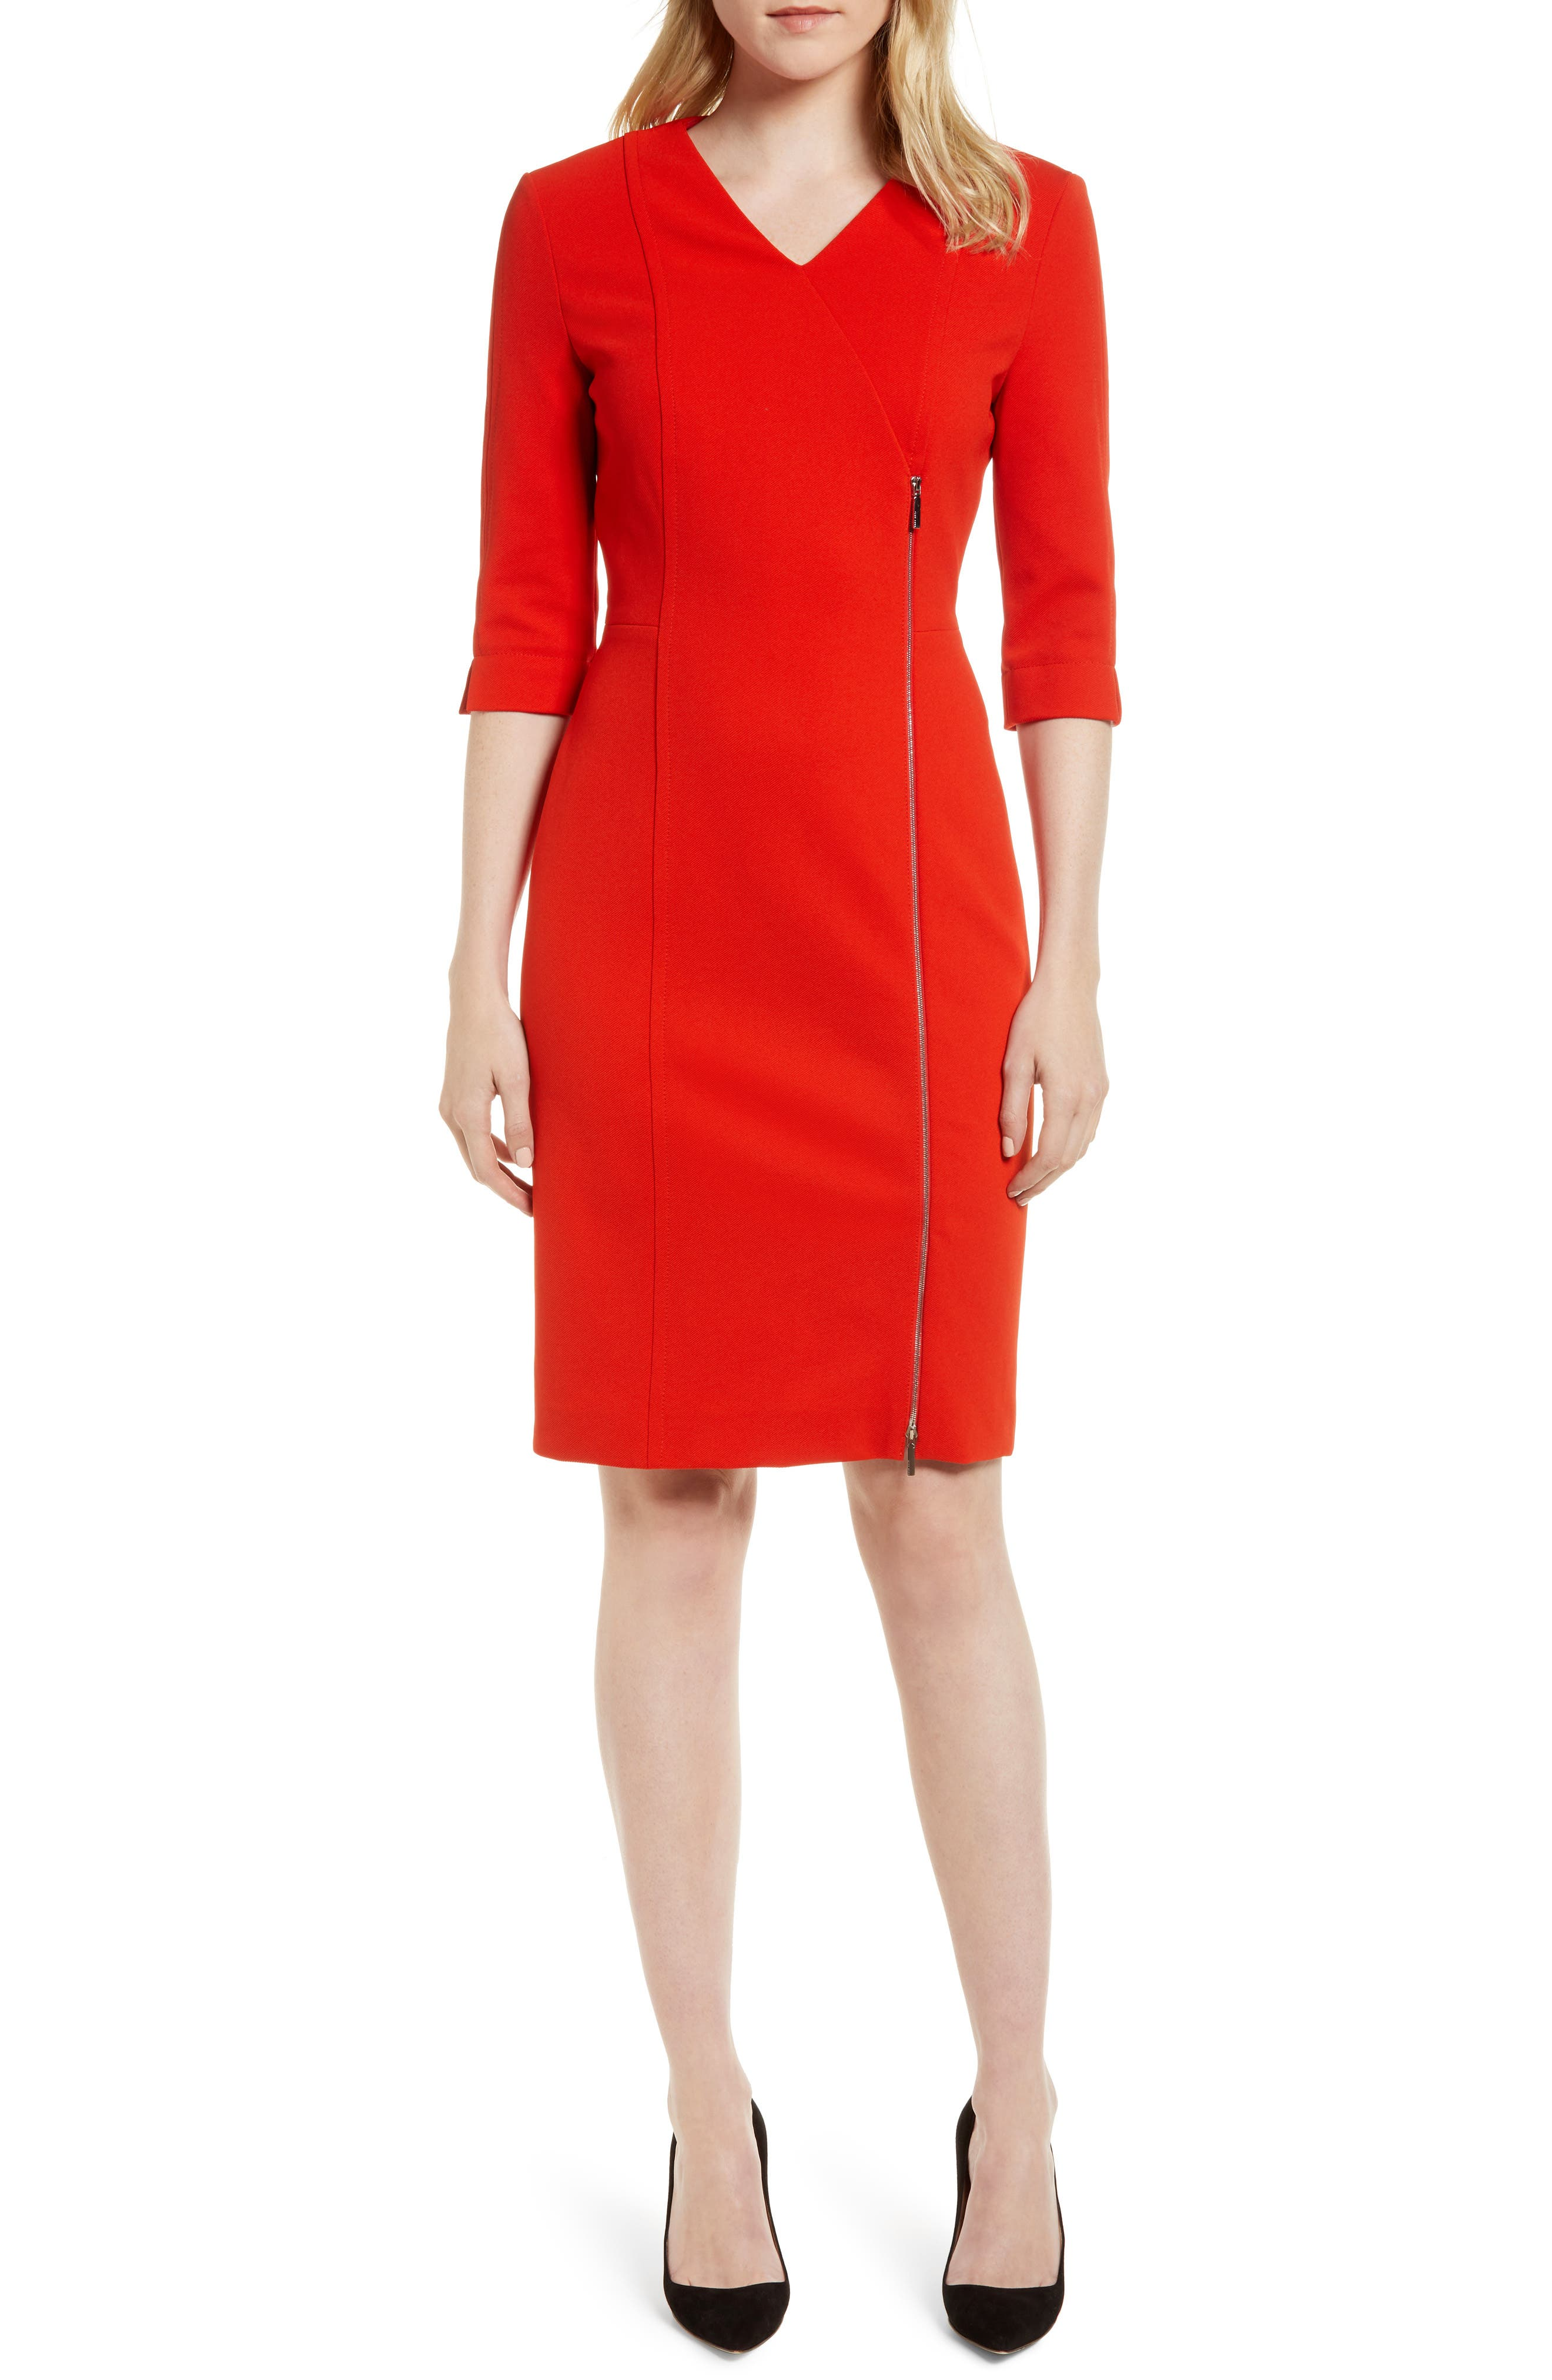 Deazema Twill Jersey Dress,                         Main,                         color, 824